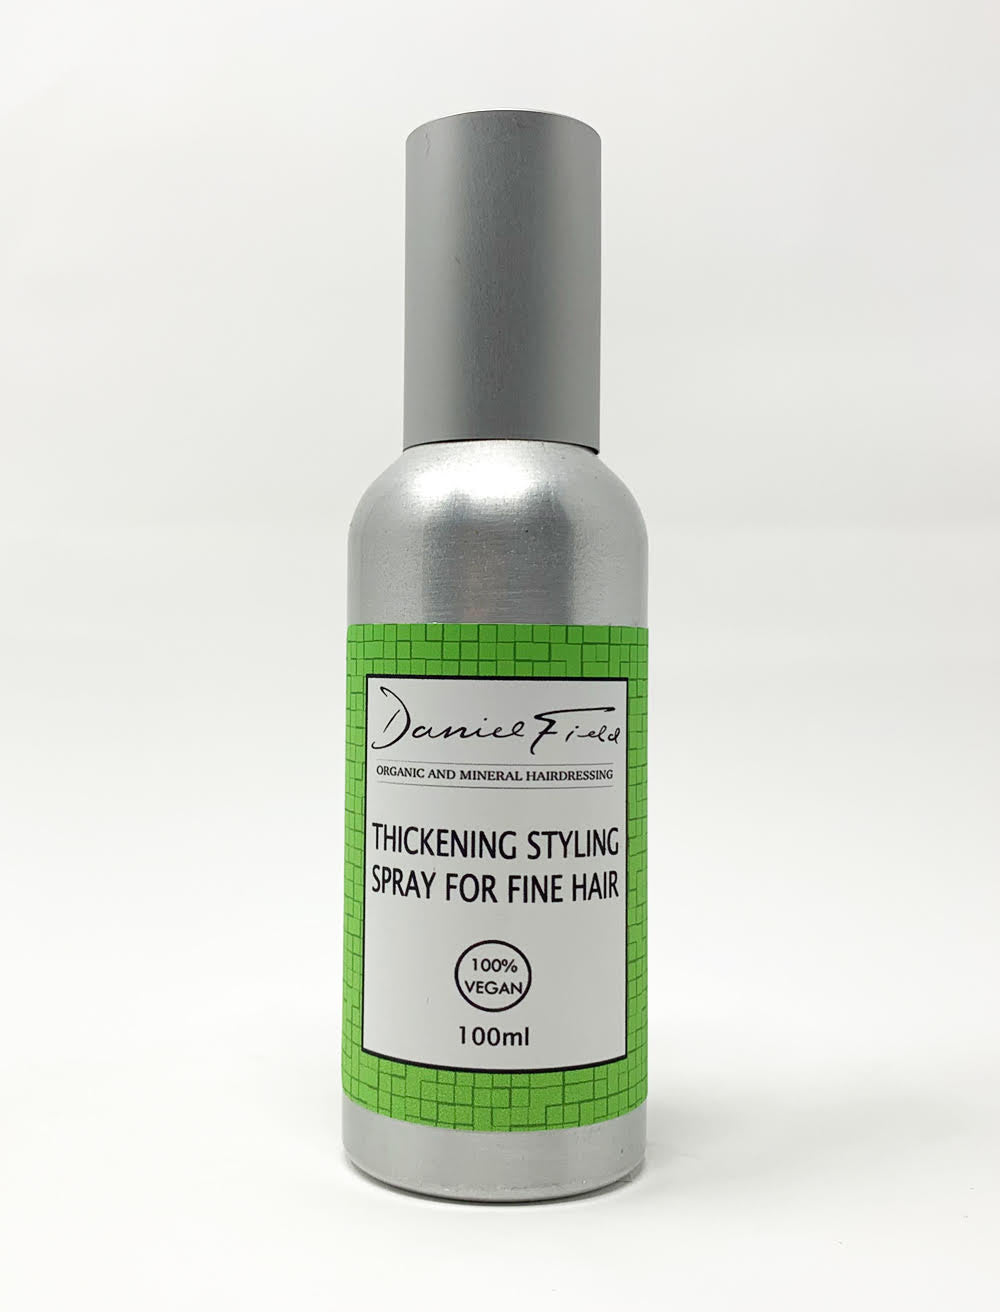 Thickening Spray for Fine Hair